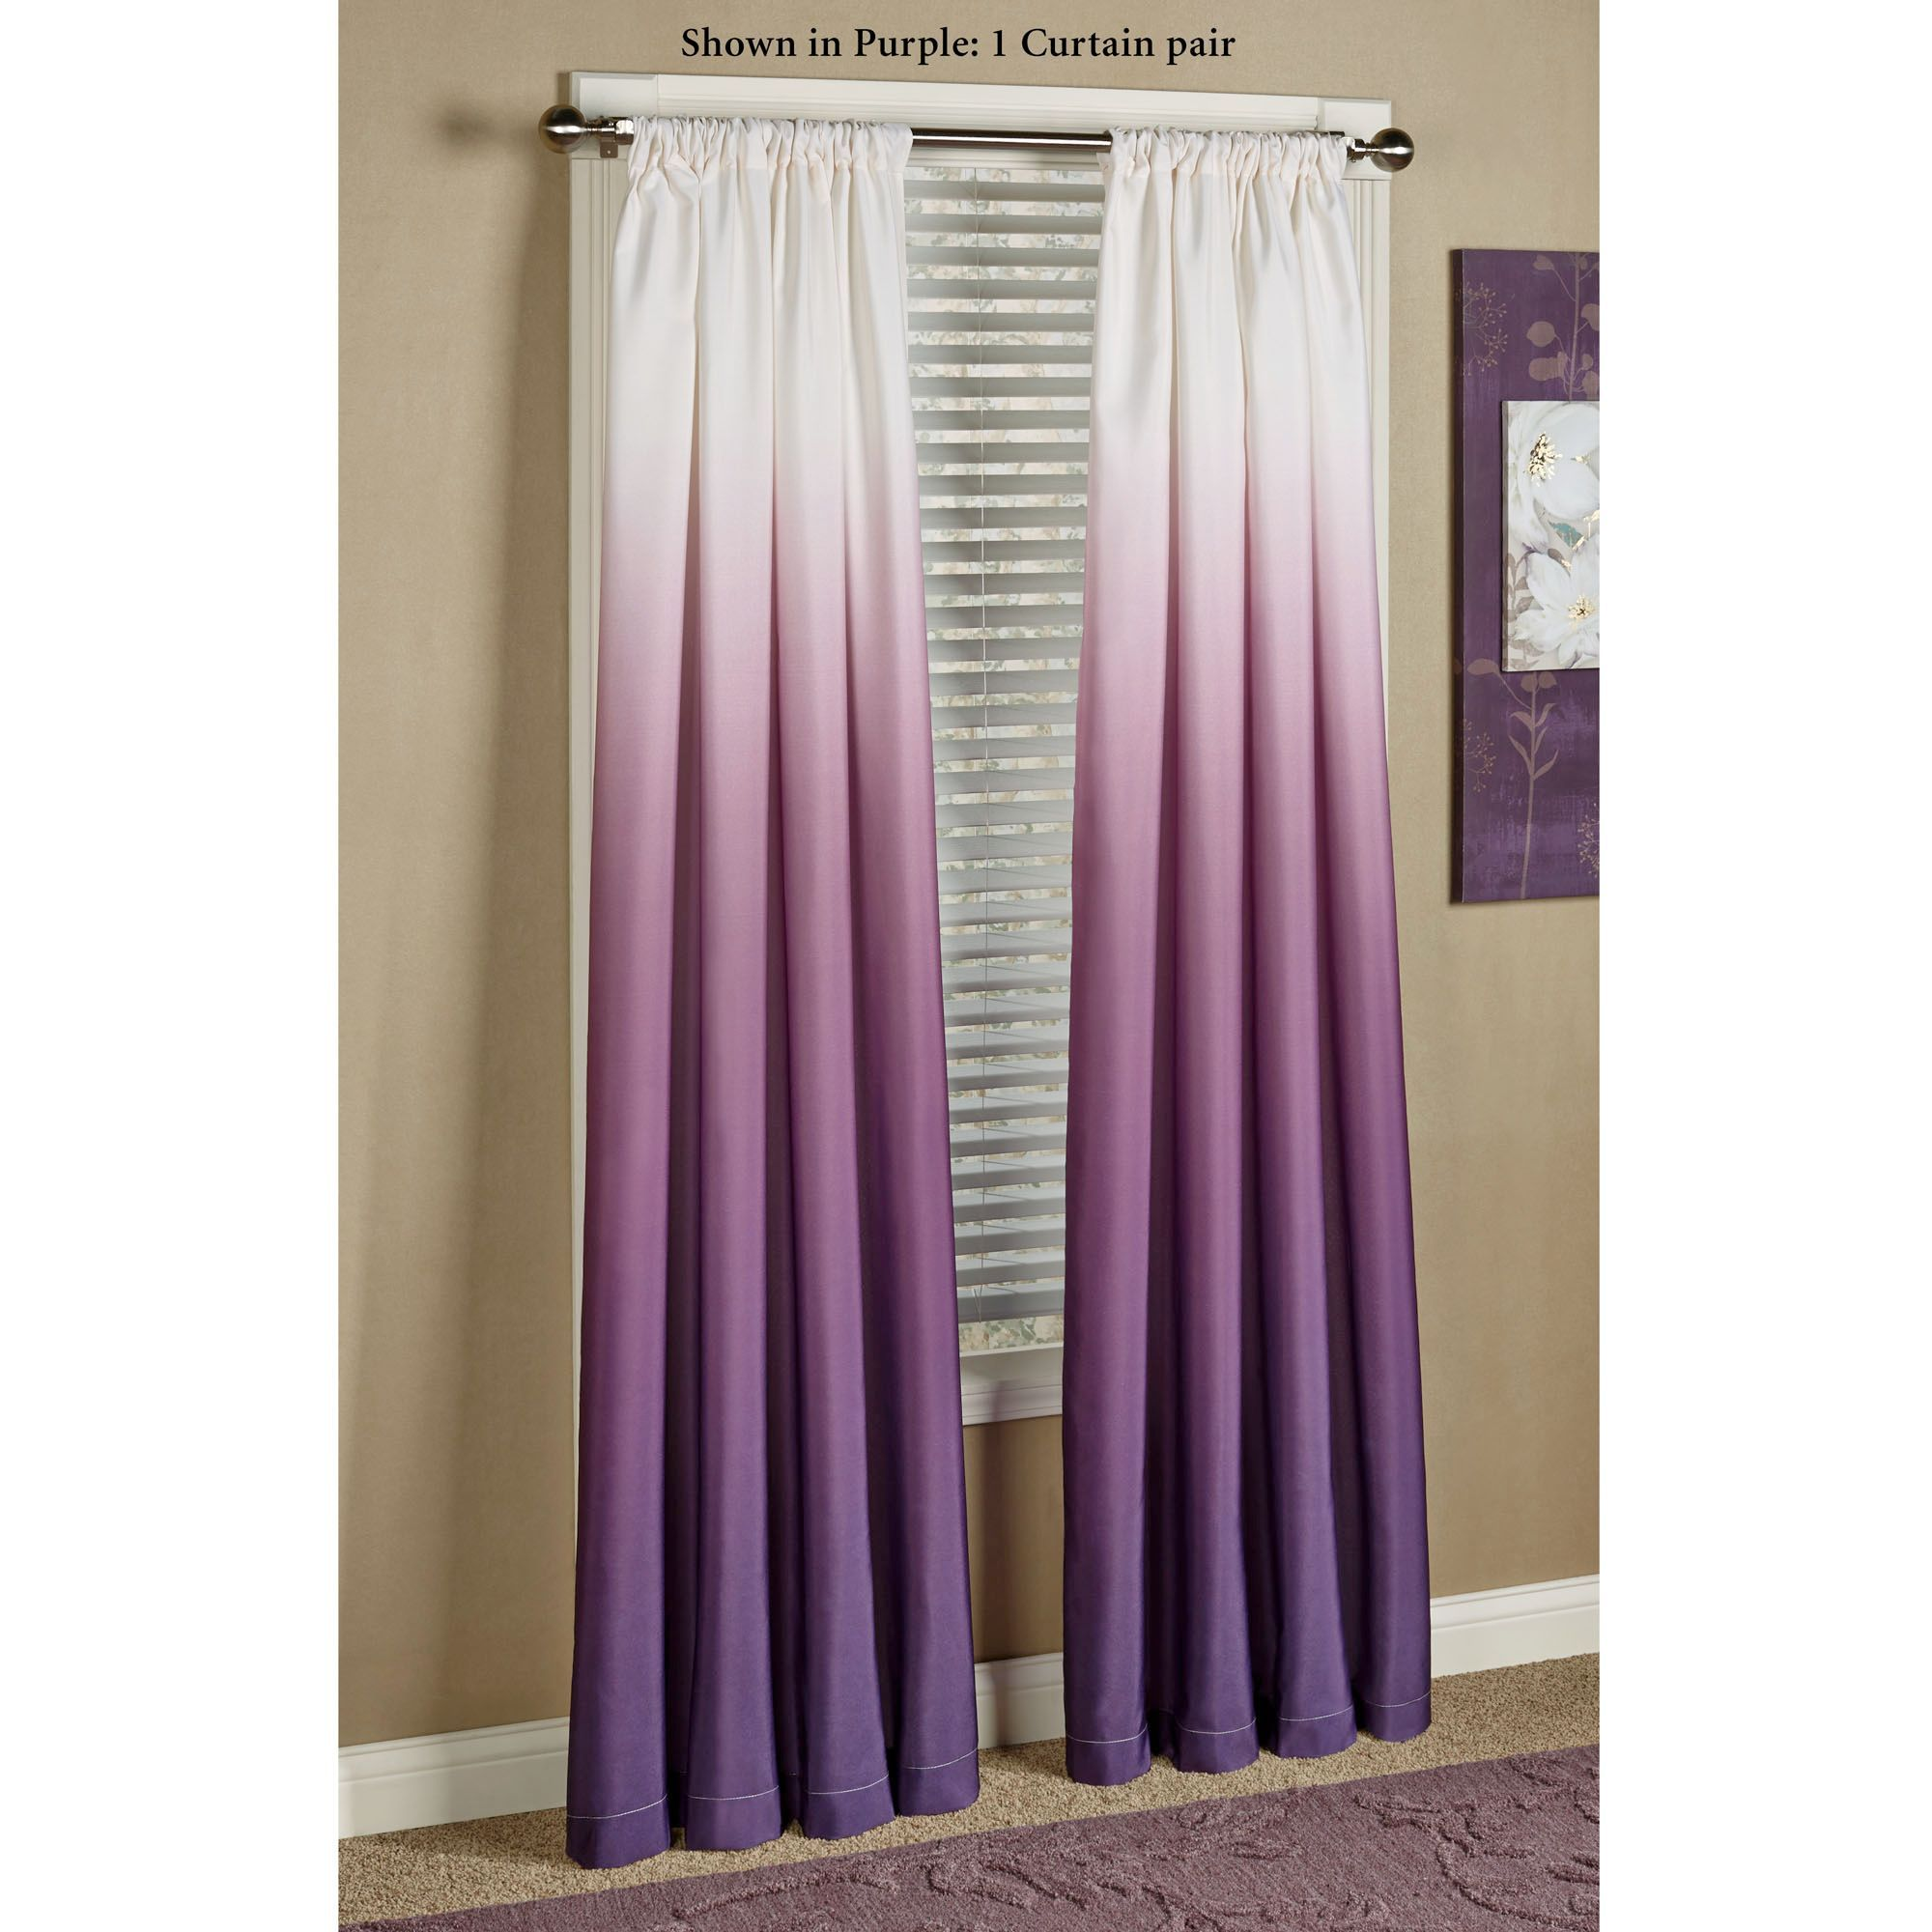 Shades ombre curtains room ombre curtains and purple for Sheer galaxy fabric